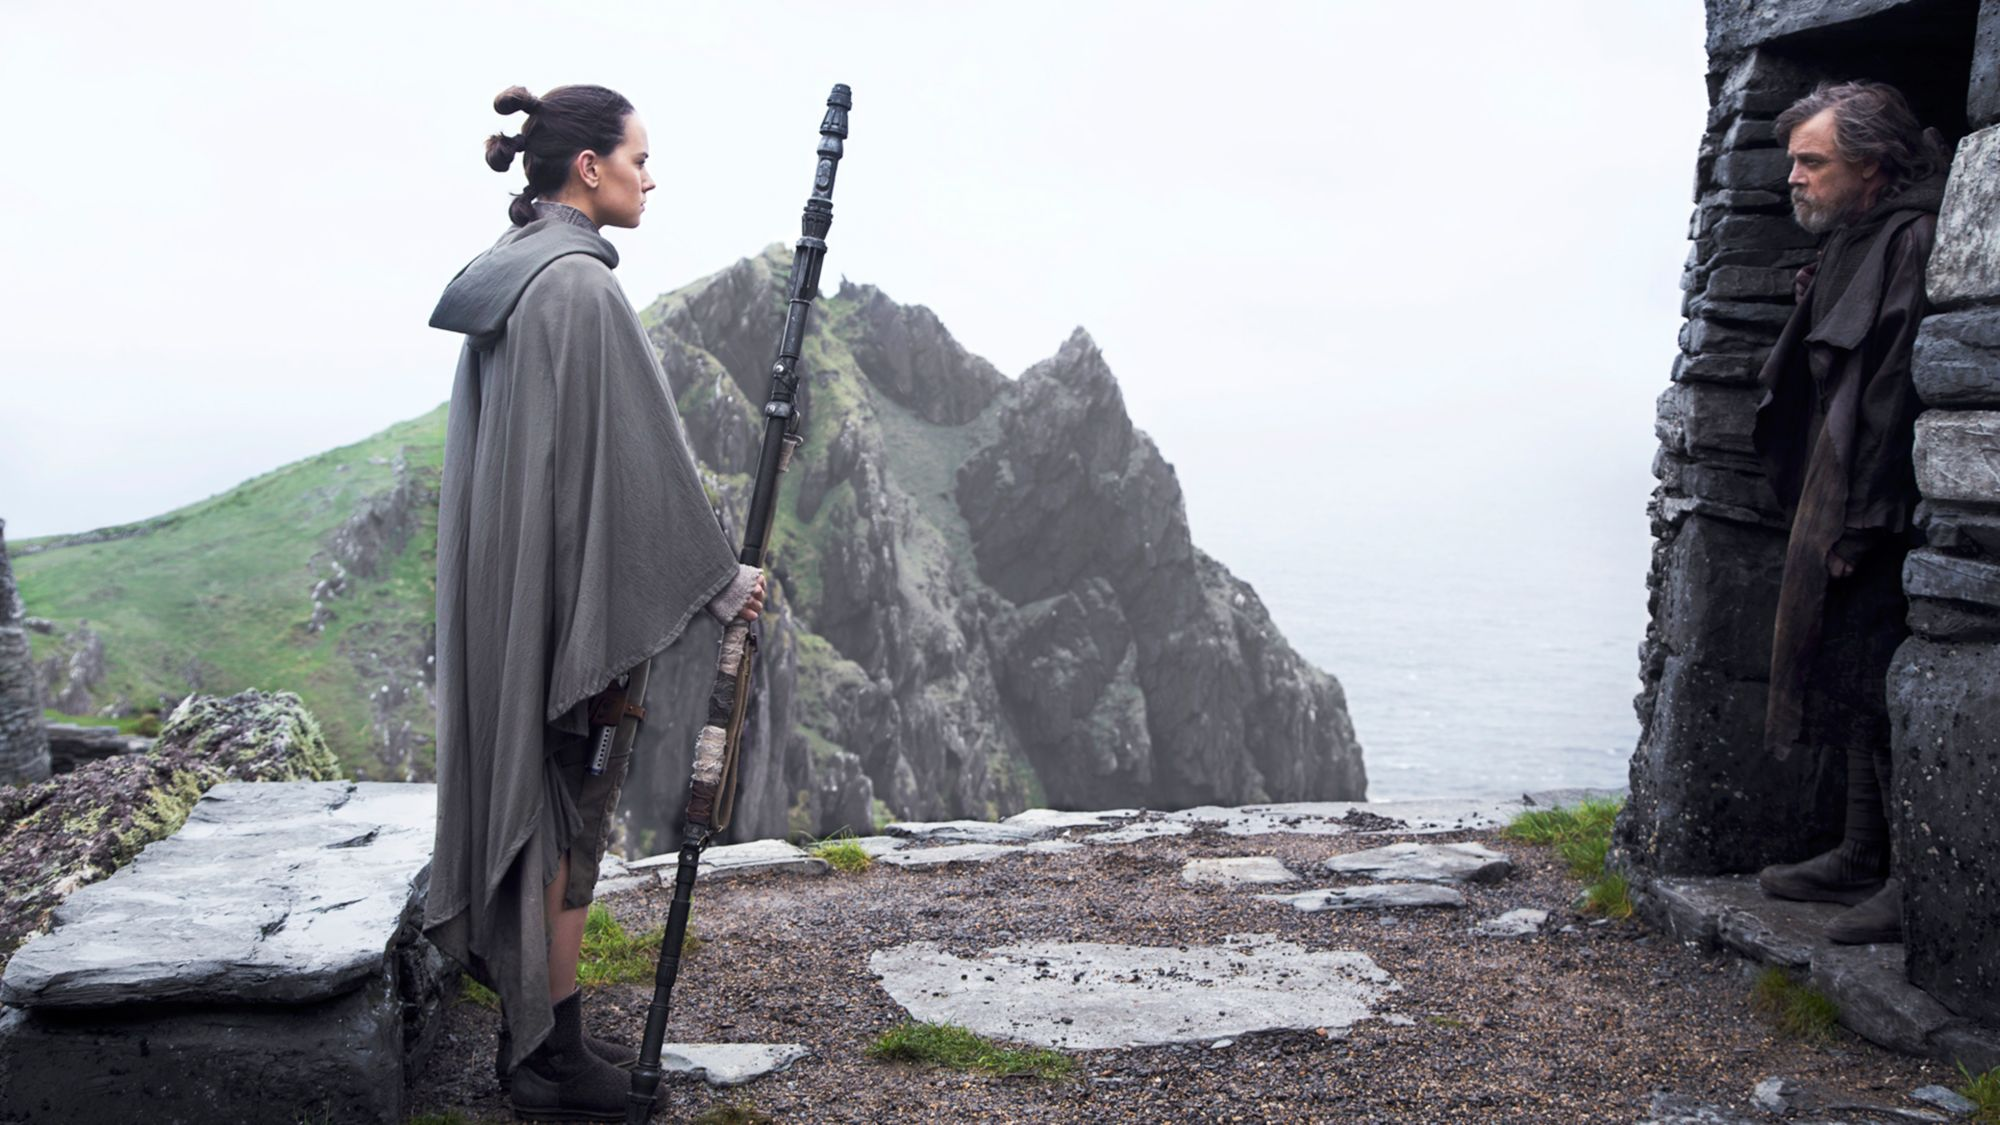 Star Wars The Last Jedi hub: Rey and Luke